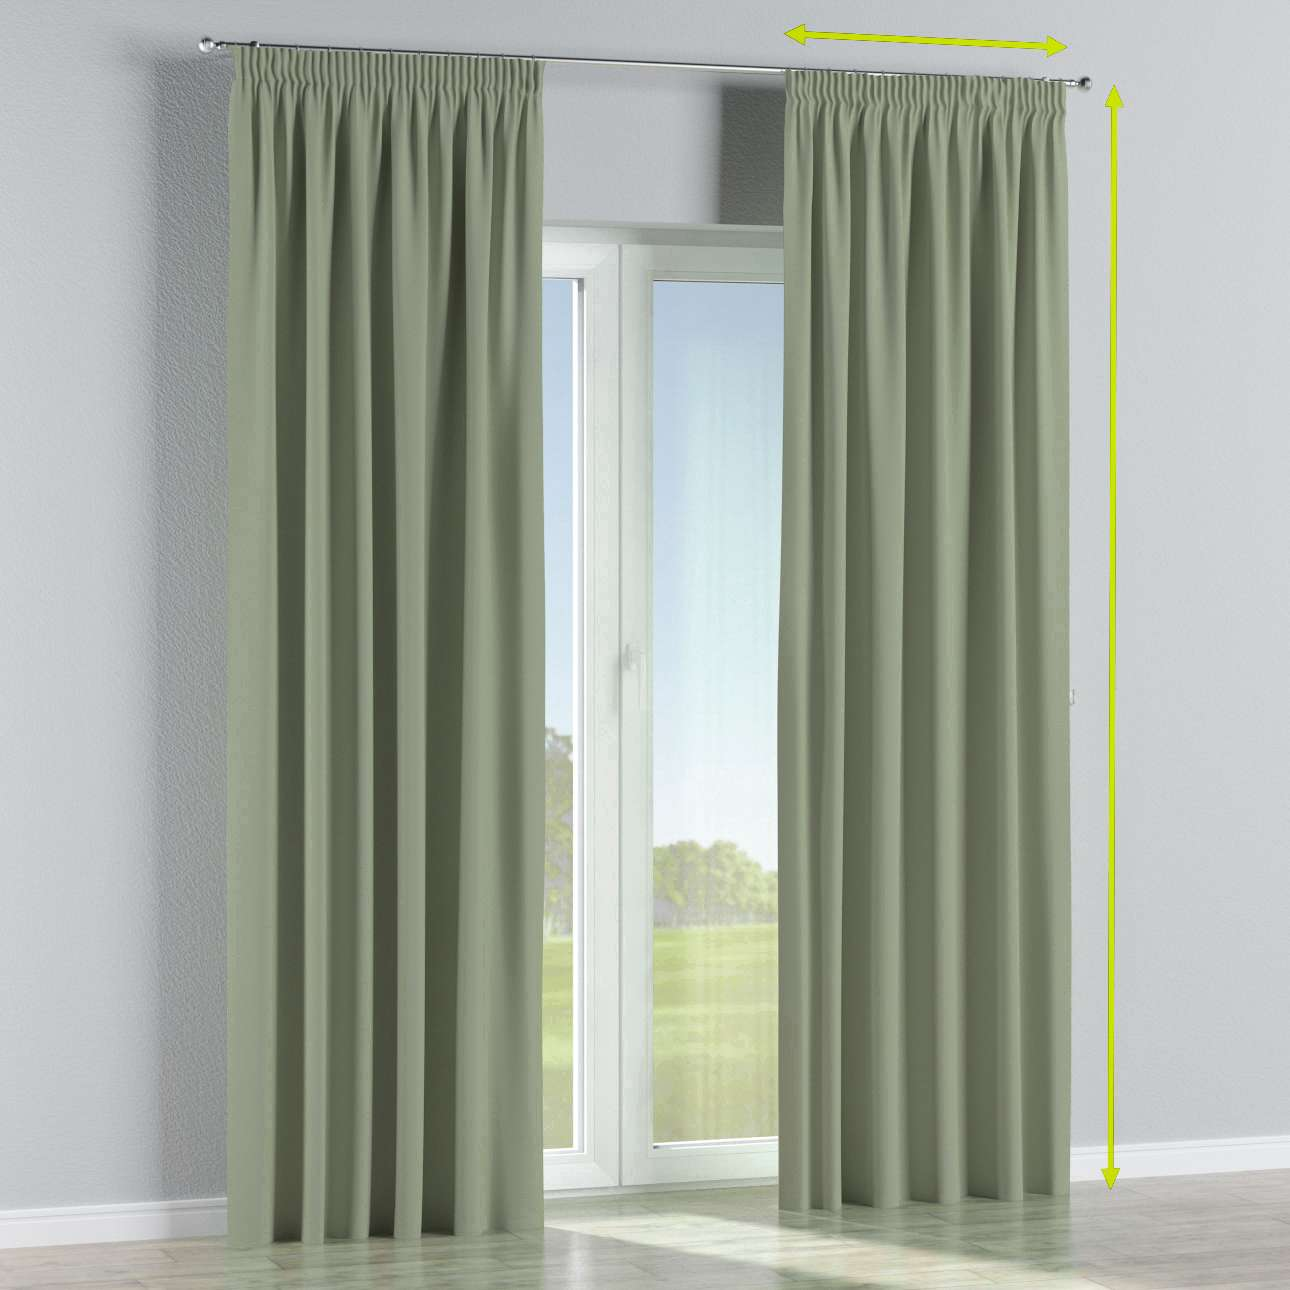 Pencil pleat curtains in collection Blackout, fabric: 269-14